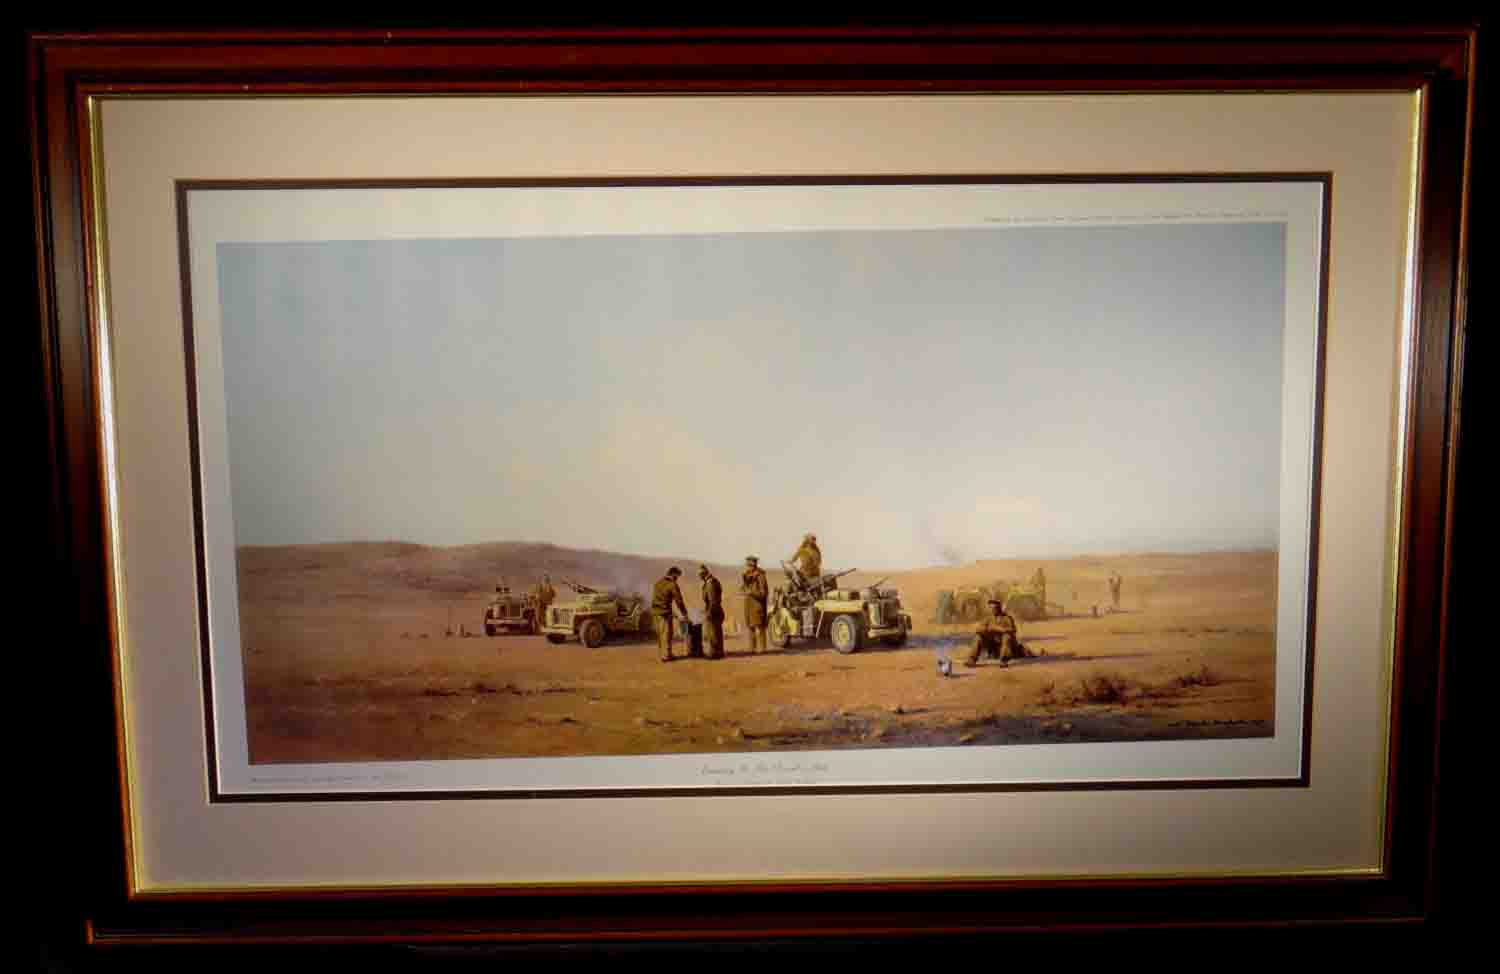 david shepherd, limimited edition pront, Evening in the Desert